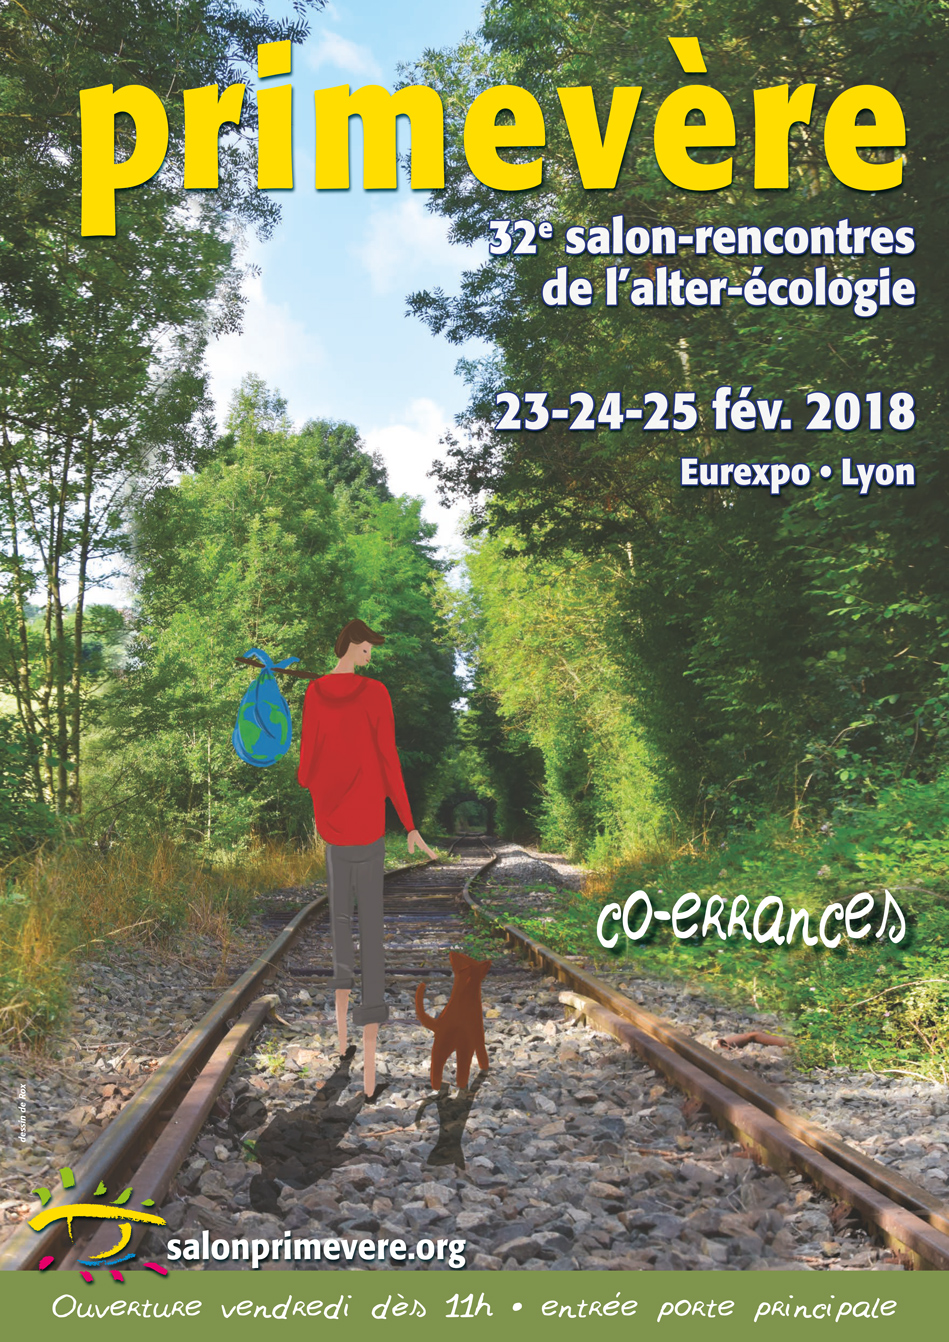 http://www.radio-couleur-chartreuse.org/wp-content/uploads/2018/03/affiche_primevere2018_web.jpg